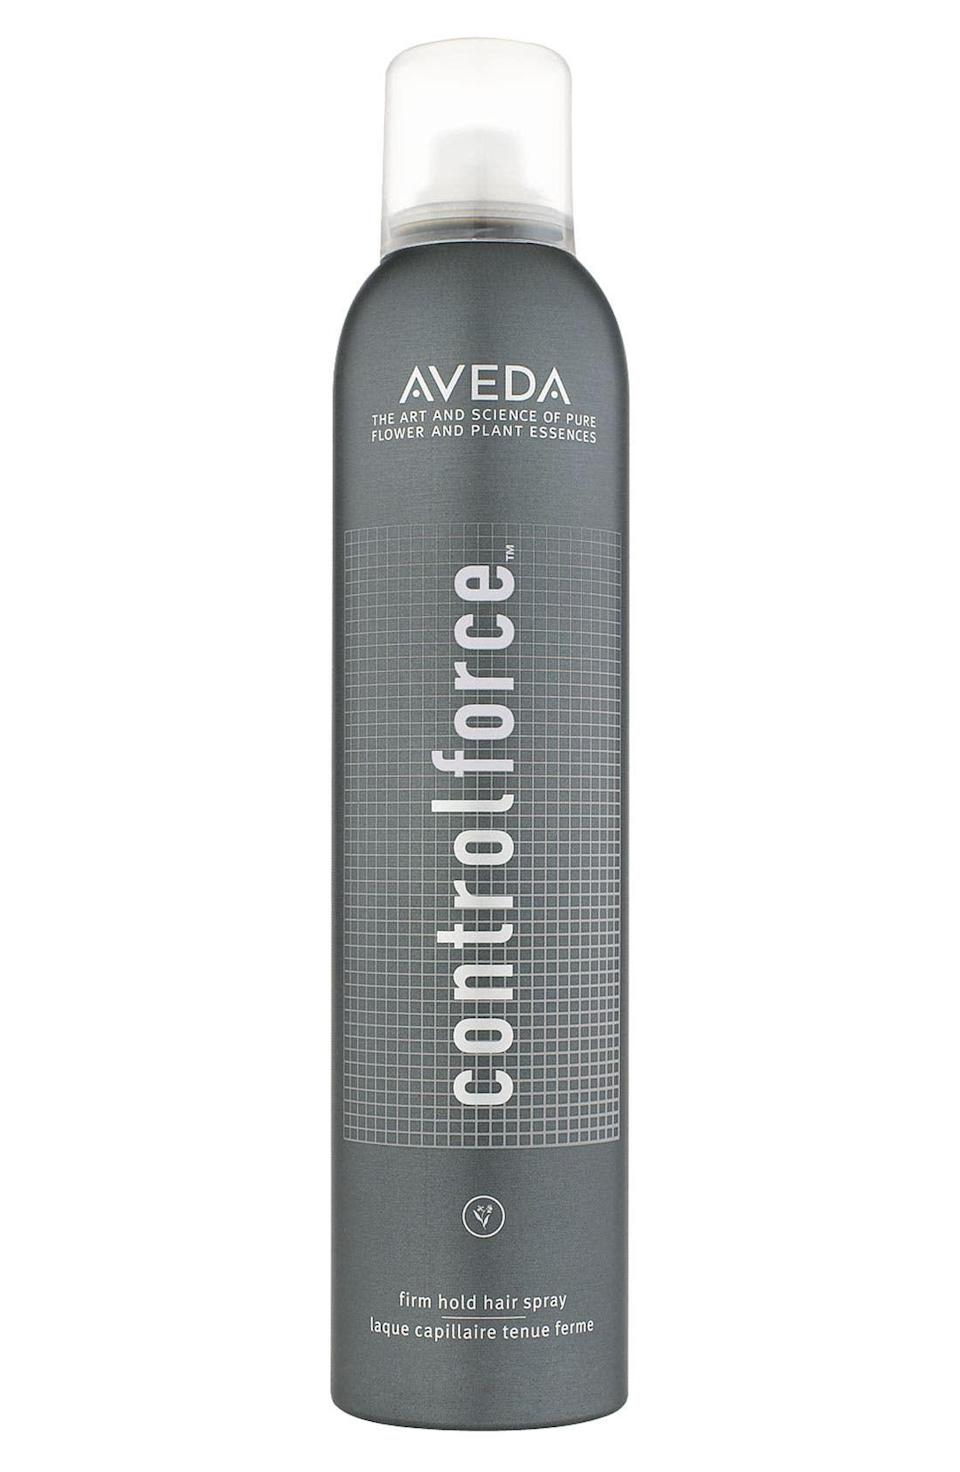 """<p><strong>AVEDA</strong></p><p><strong>$32.00</strong></p><p><a href=""""https://go.redirectingat.com?id=74968X1596630&url=https%3A%2F%2Fshop.nordstrom.com%2Fs%2Faveda-control-force-firm-hold-hair-spray%2F3412053&sref=https%3A%2F%2Fwww.cosmopolitan.com%2Fstyle-beauty%2Fbeauty%2Fg37884764%2Fspring-2022-hair-trends%2F"""" rel=""""nofollow noopener"""" target=""""_blank"""" data-ylk=""""slk:Shop Now"""" class=""""link rapid-noclick-resp"""">Shop Now</a></p><p>To keep the middle <a href=""""https://www.cosmopolitan.com/style-beauty/beauty/g30767306/how-to-part-your-hair/"""" rel=""""nofollow noopener"""" target=""""_blank"""" data-ylk=""""slk:hair part"""" class=""""link rapid-noclick-resp"""">hair part</a> sharp, secure the back half of your hair into a ponytail first. Then, spray the front with this strong hairspray and slick back one side of your hair at a time. <strong>This spray also protects against humidity</strong>—a must when we're talking about spring.</p>"""